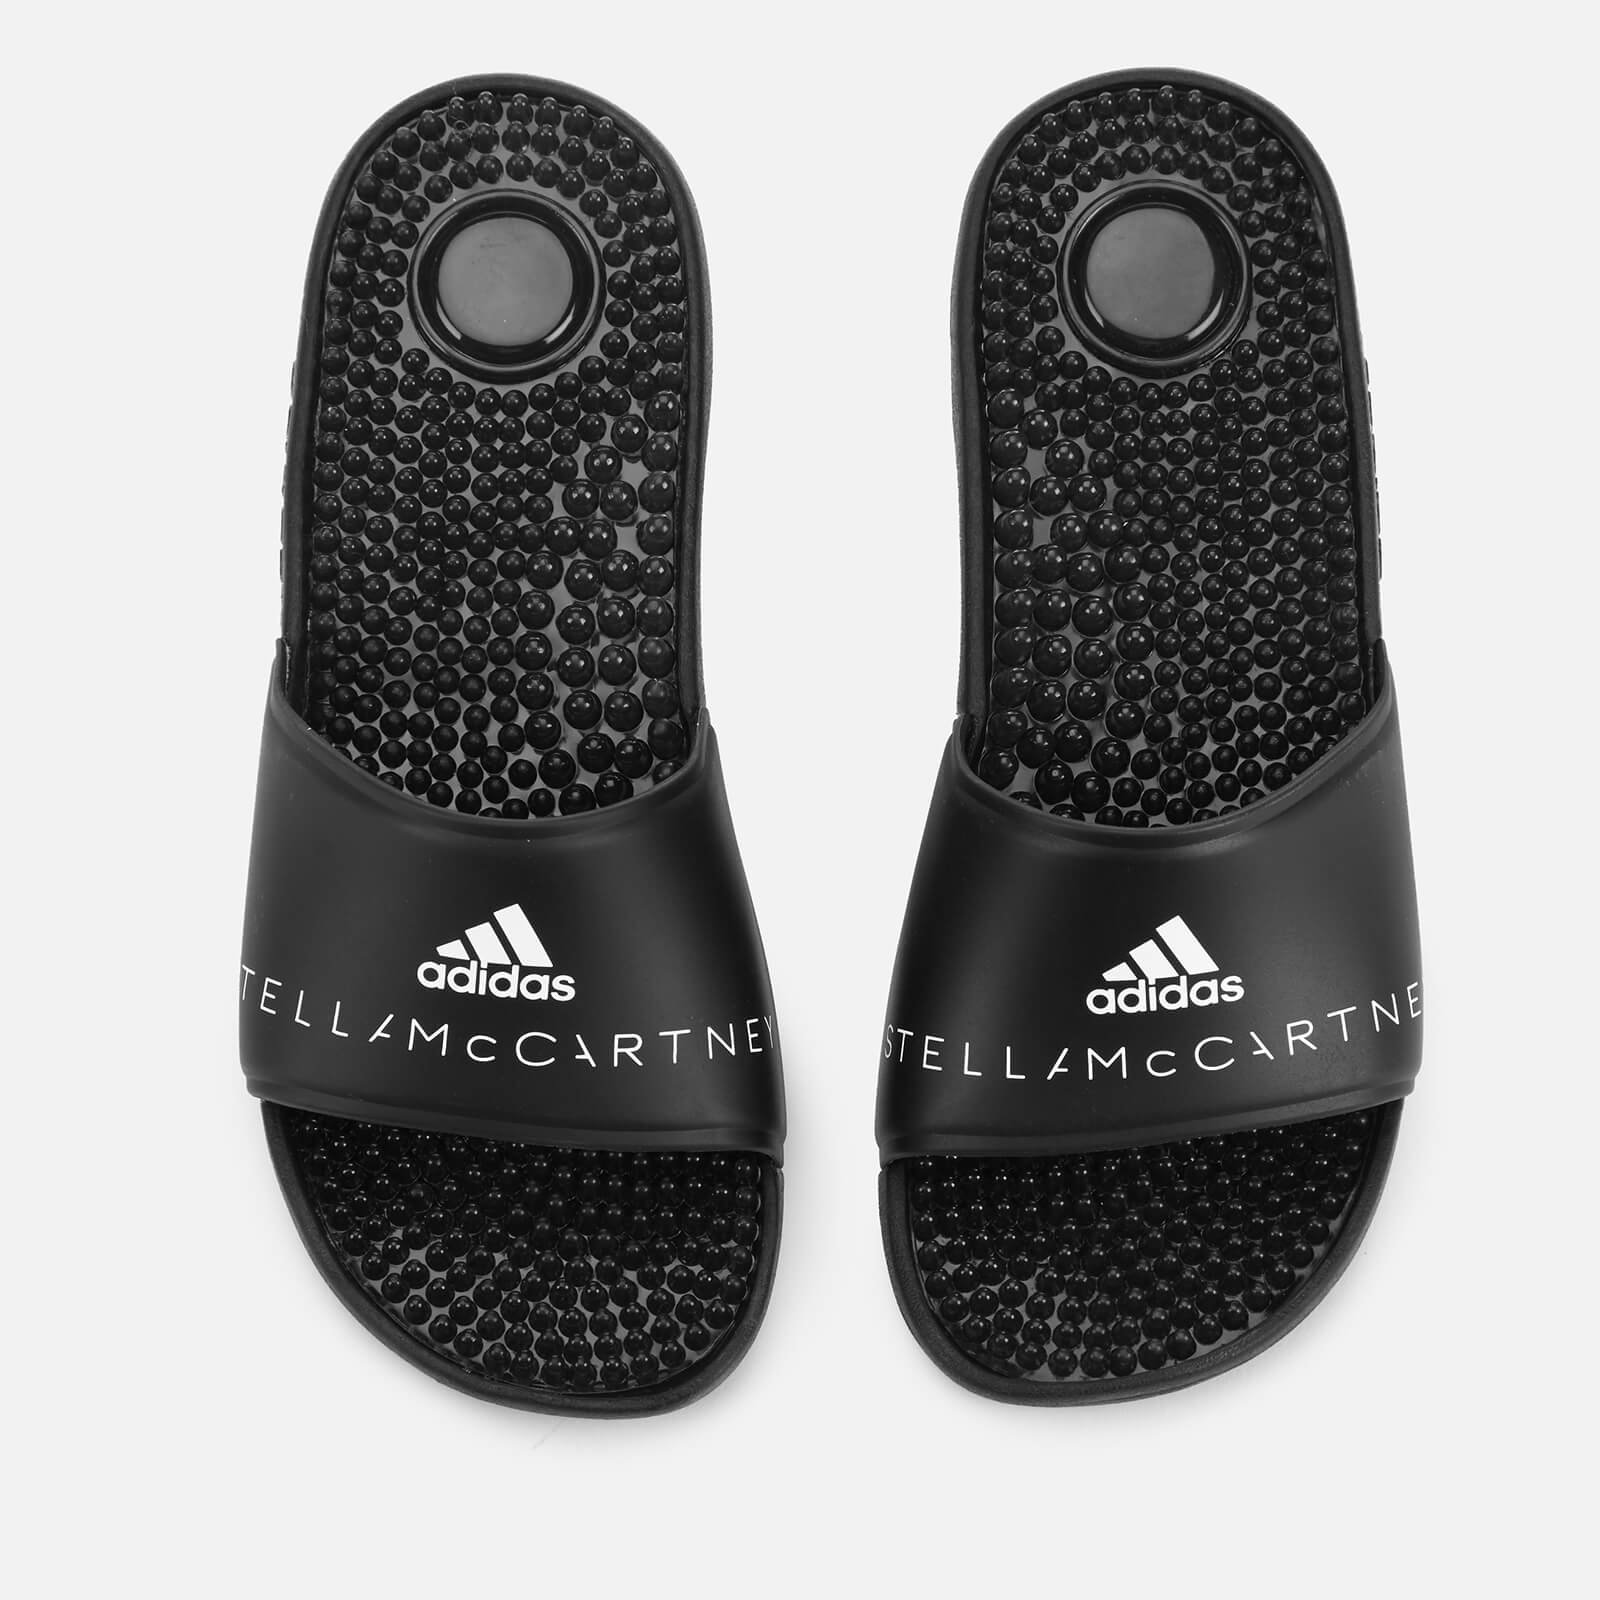 ba70d2e7b1fb adidas by Stella McCartney Women s Adissage Slide Sandals - Core Black White  - Free UK Delivery over £50